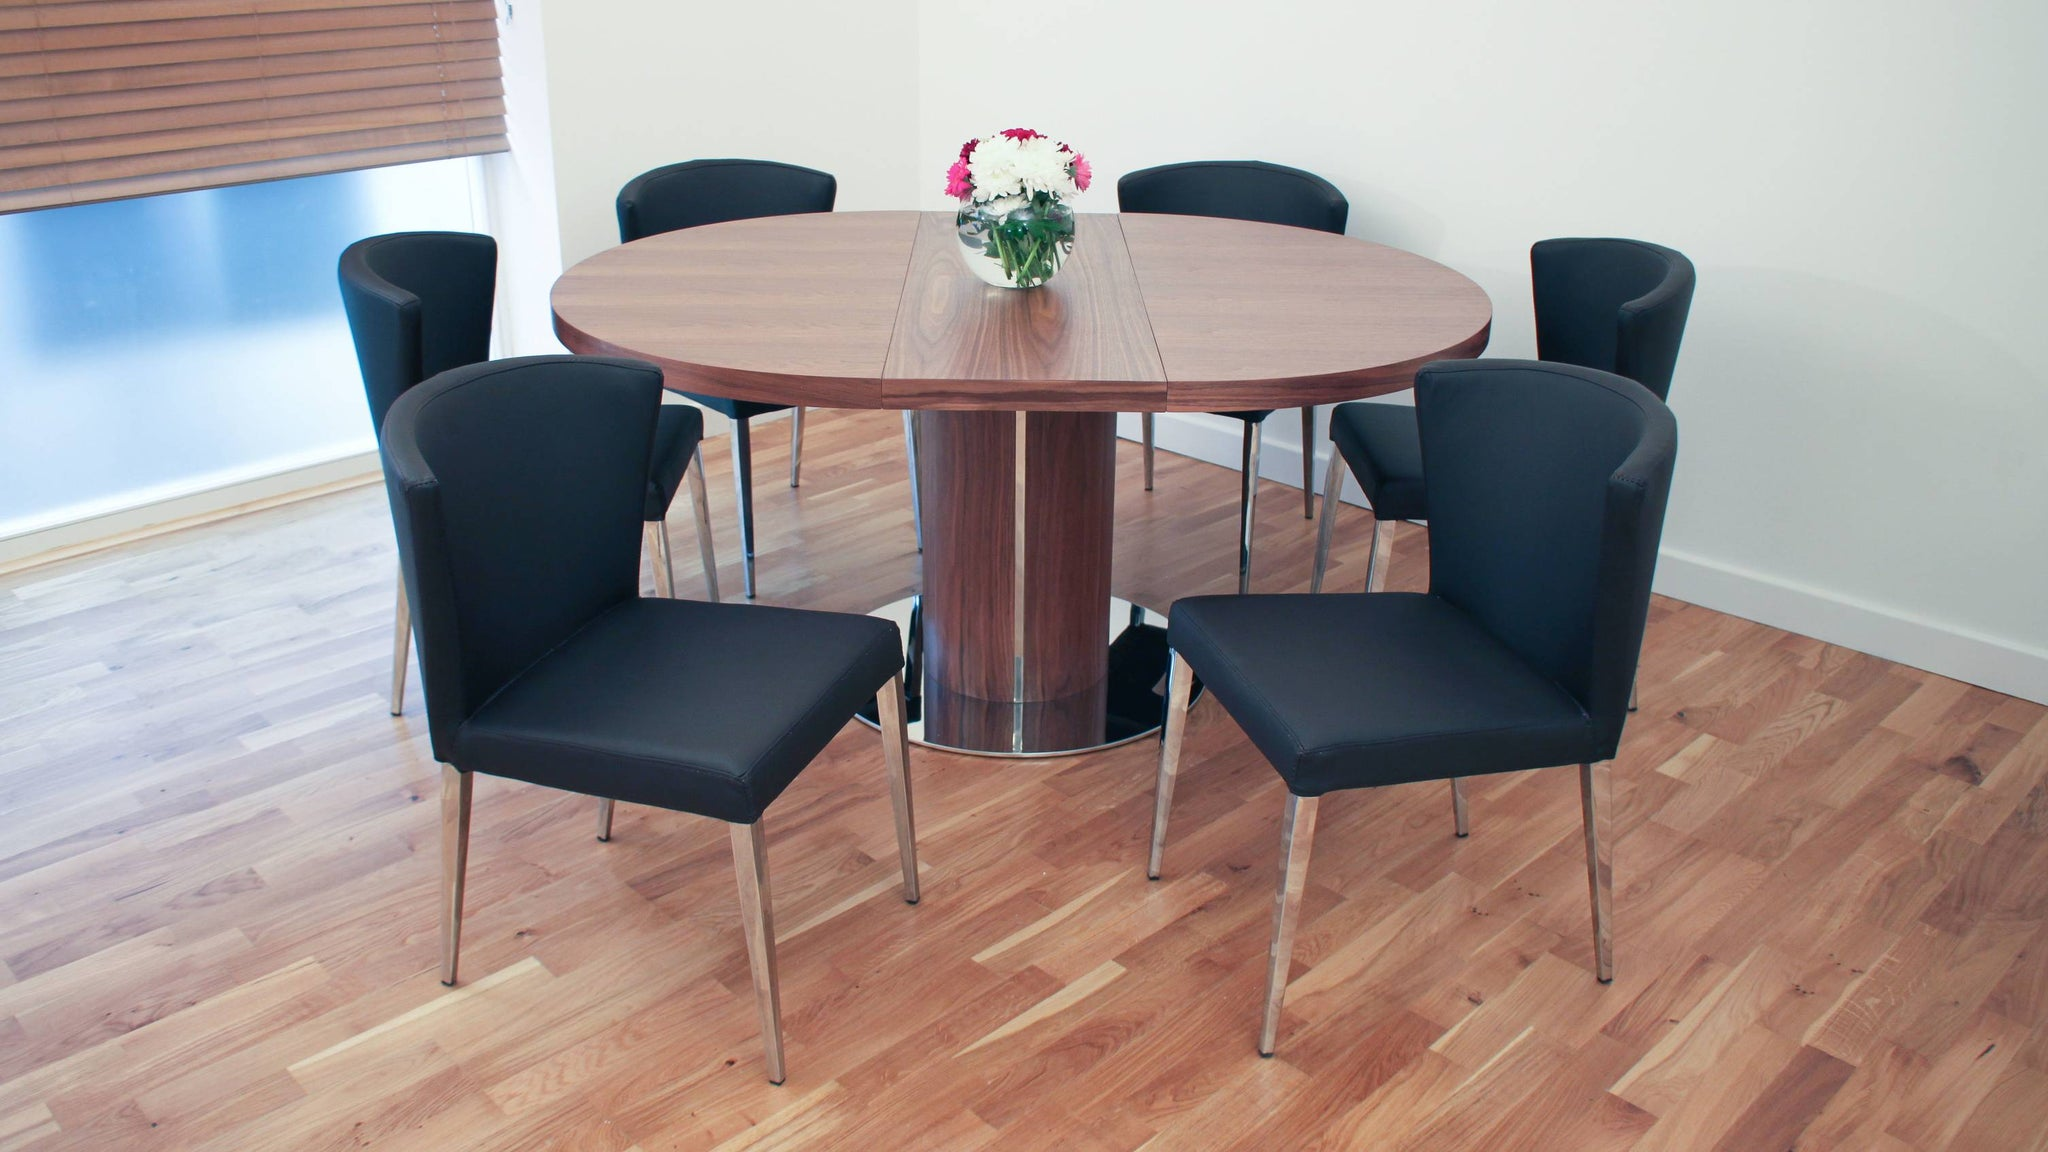 Stylish Shaped Black Dining Chairs and Easy Extending Dining Table